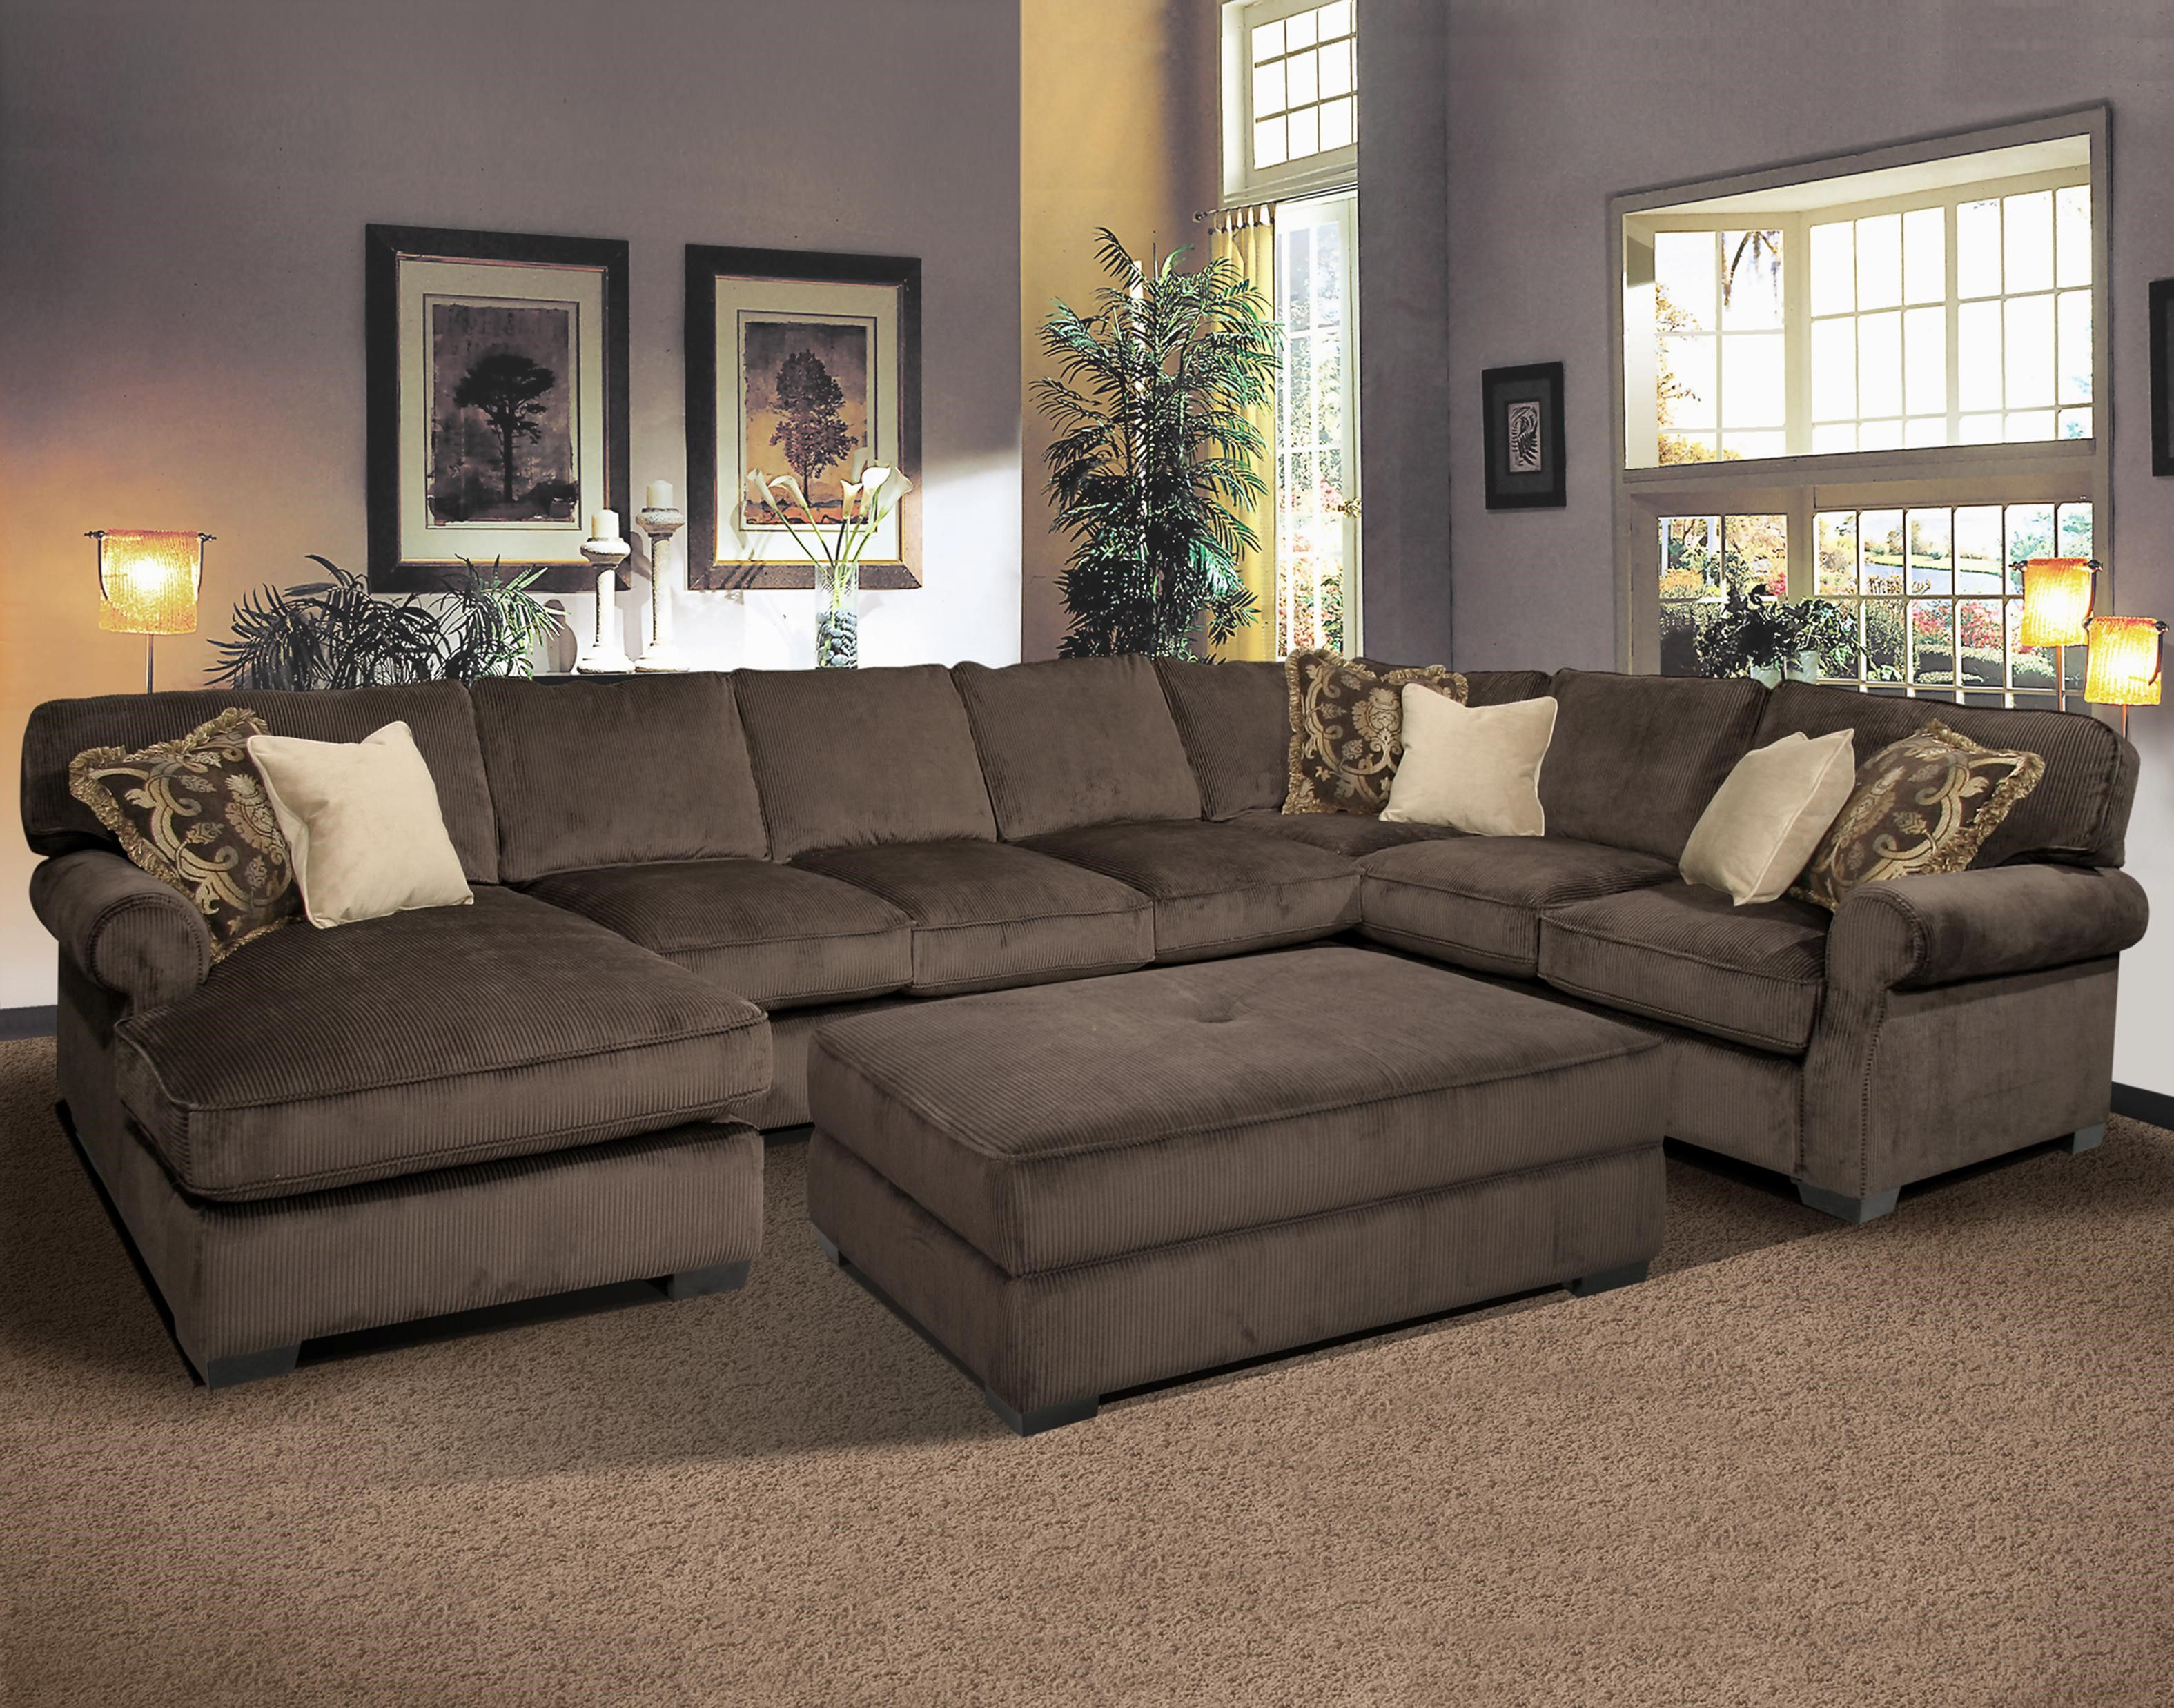 Sofa Set Sale In Jamshedpur Comfortable Living Room Sofas Design With Elegant